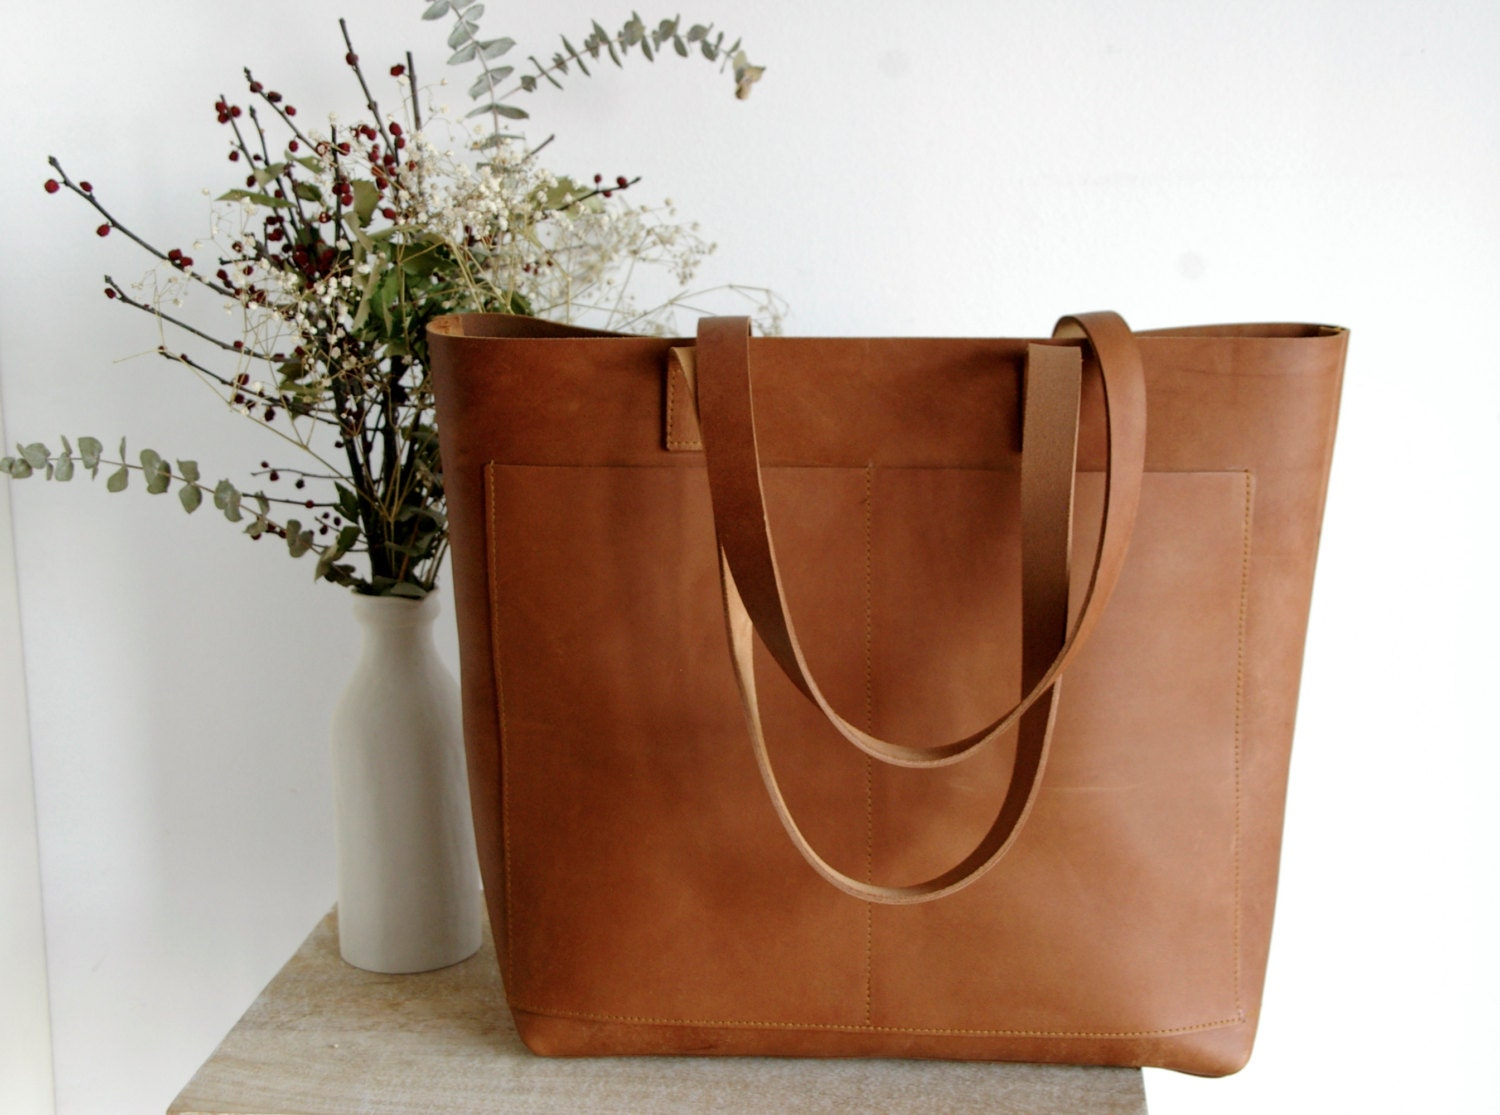 Oversized Camel Leather Tote Bag With Outside Pockets Cap Sa